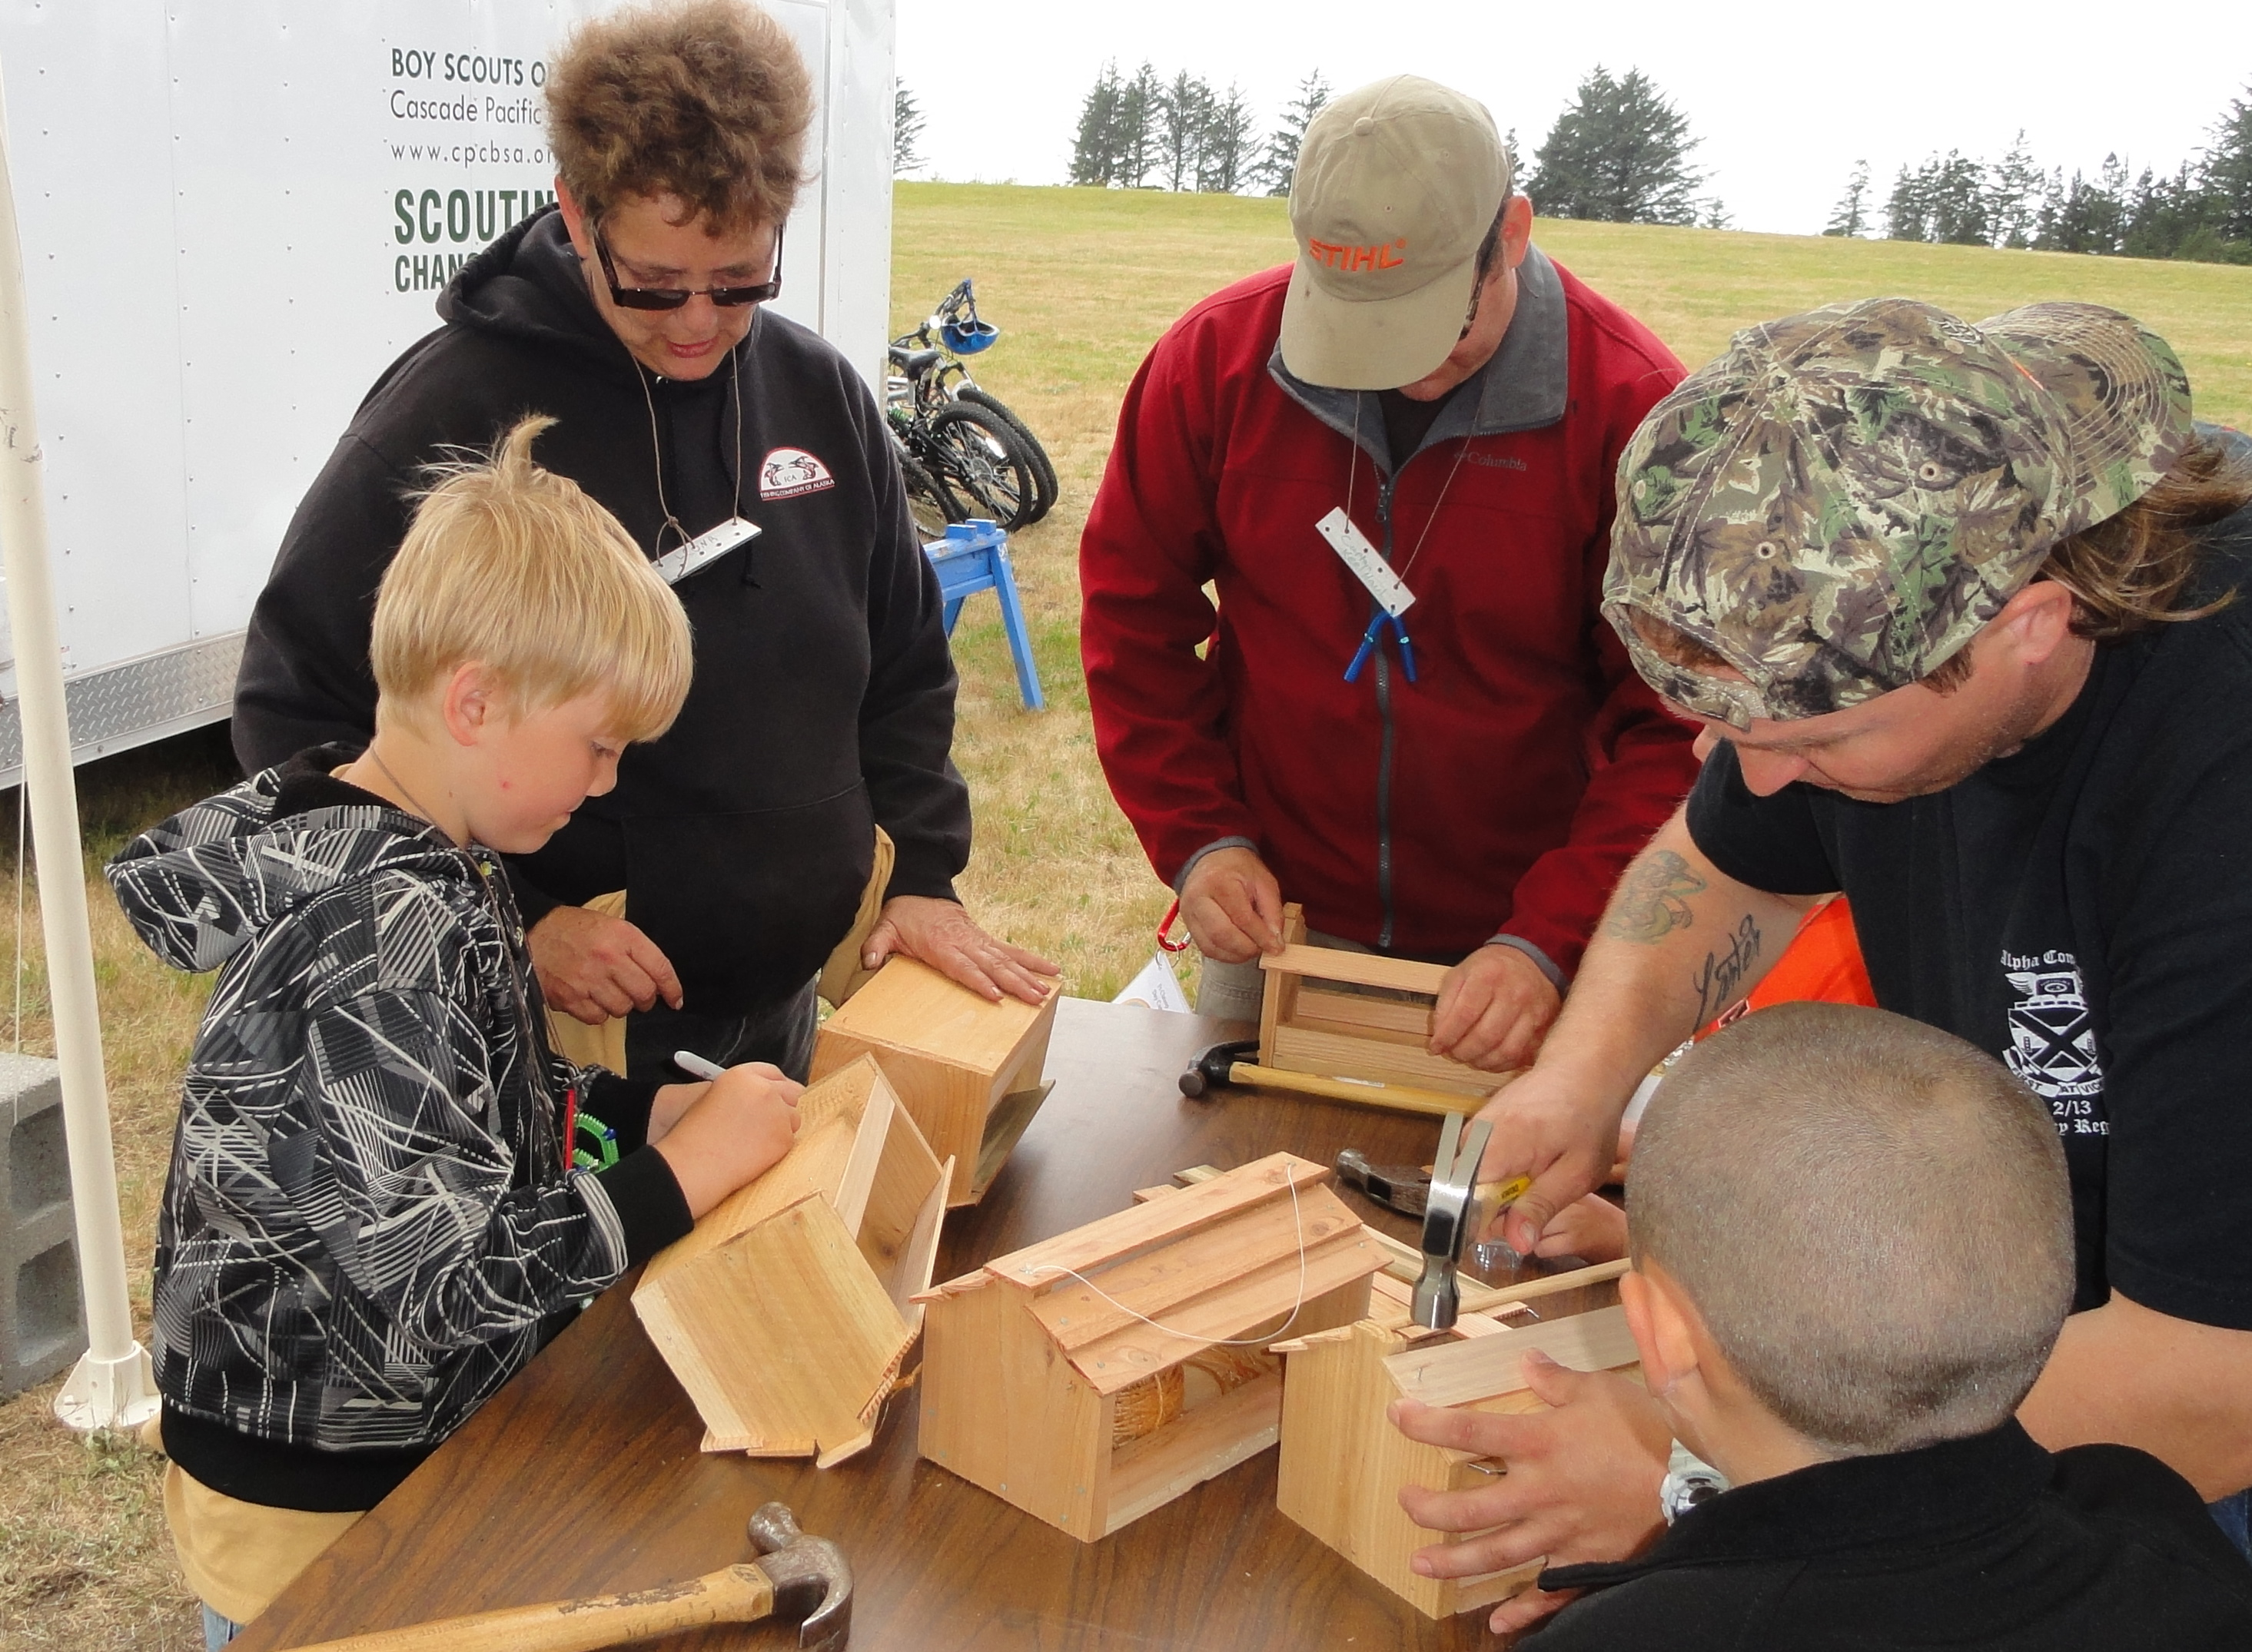 Diy Woodworking Projects For Cub Scouts